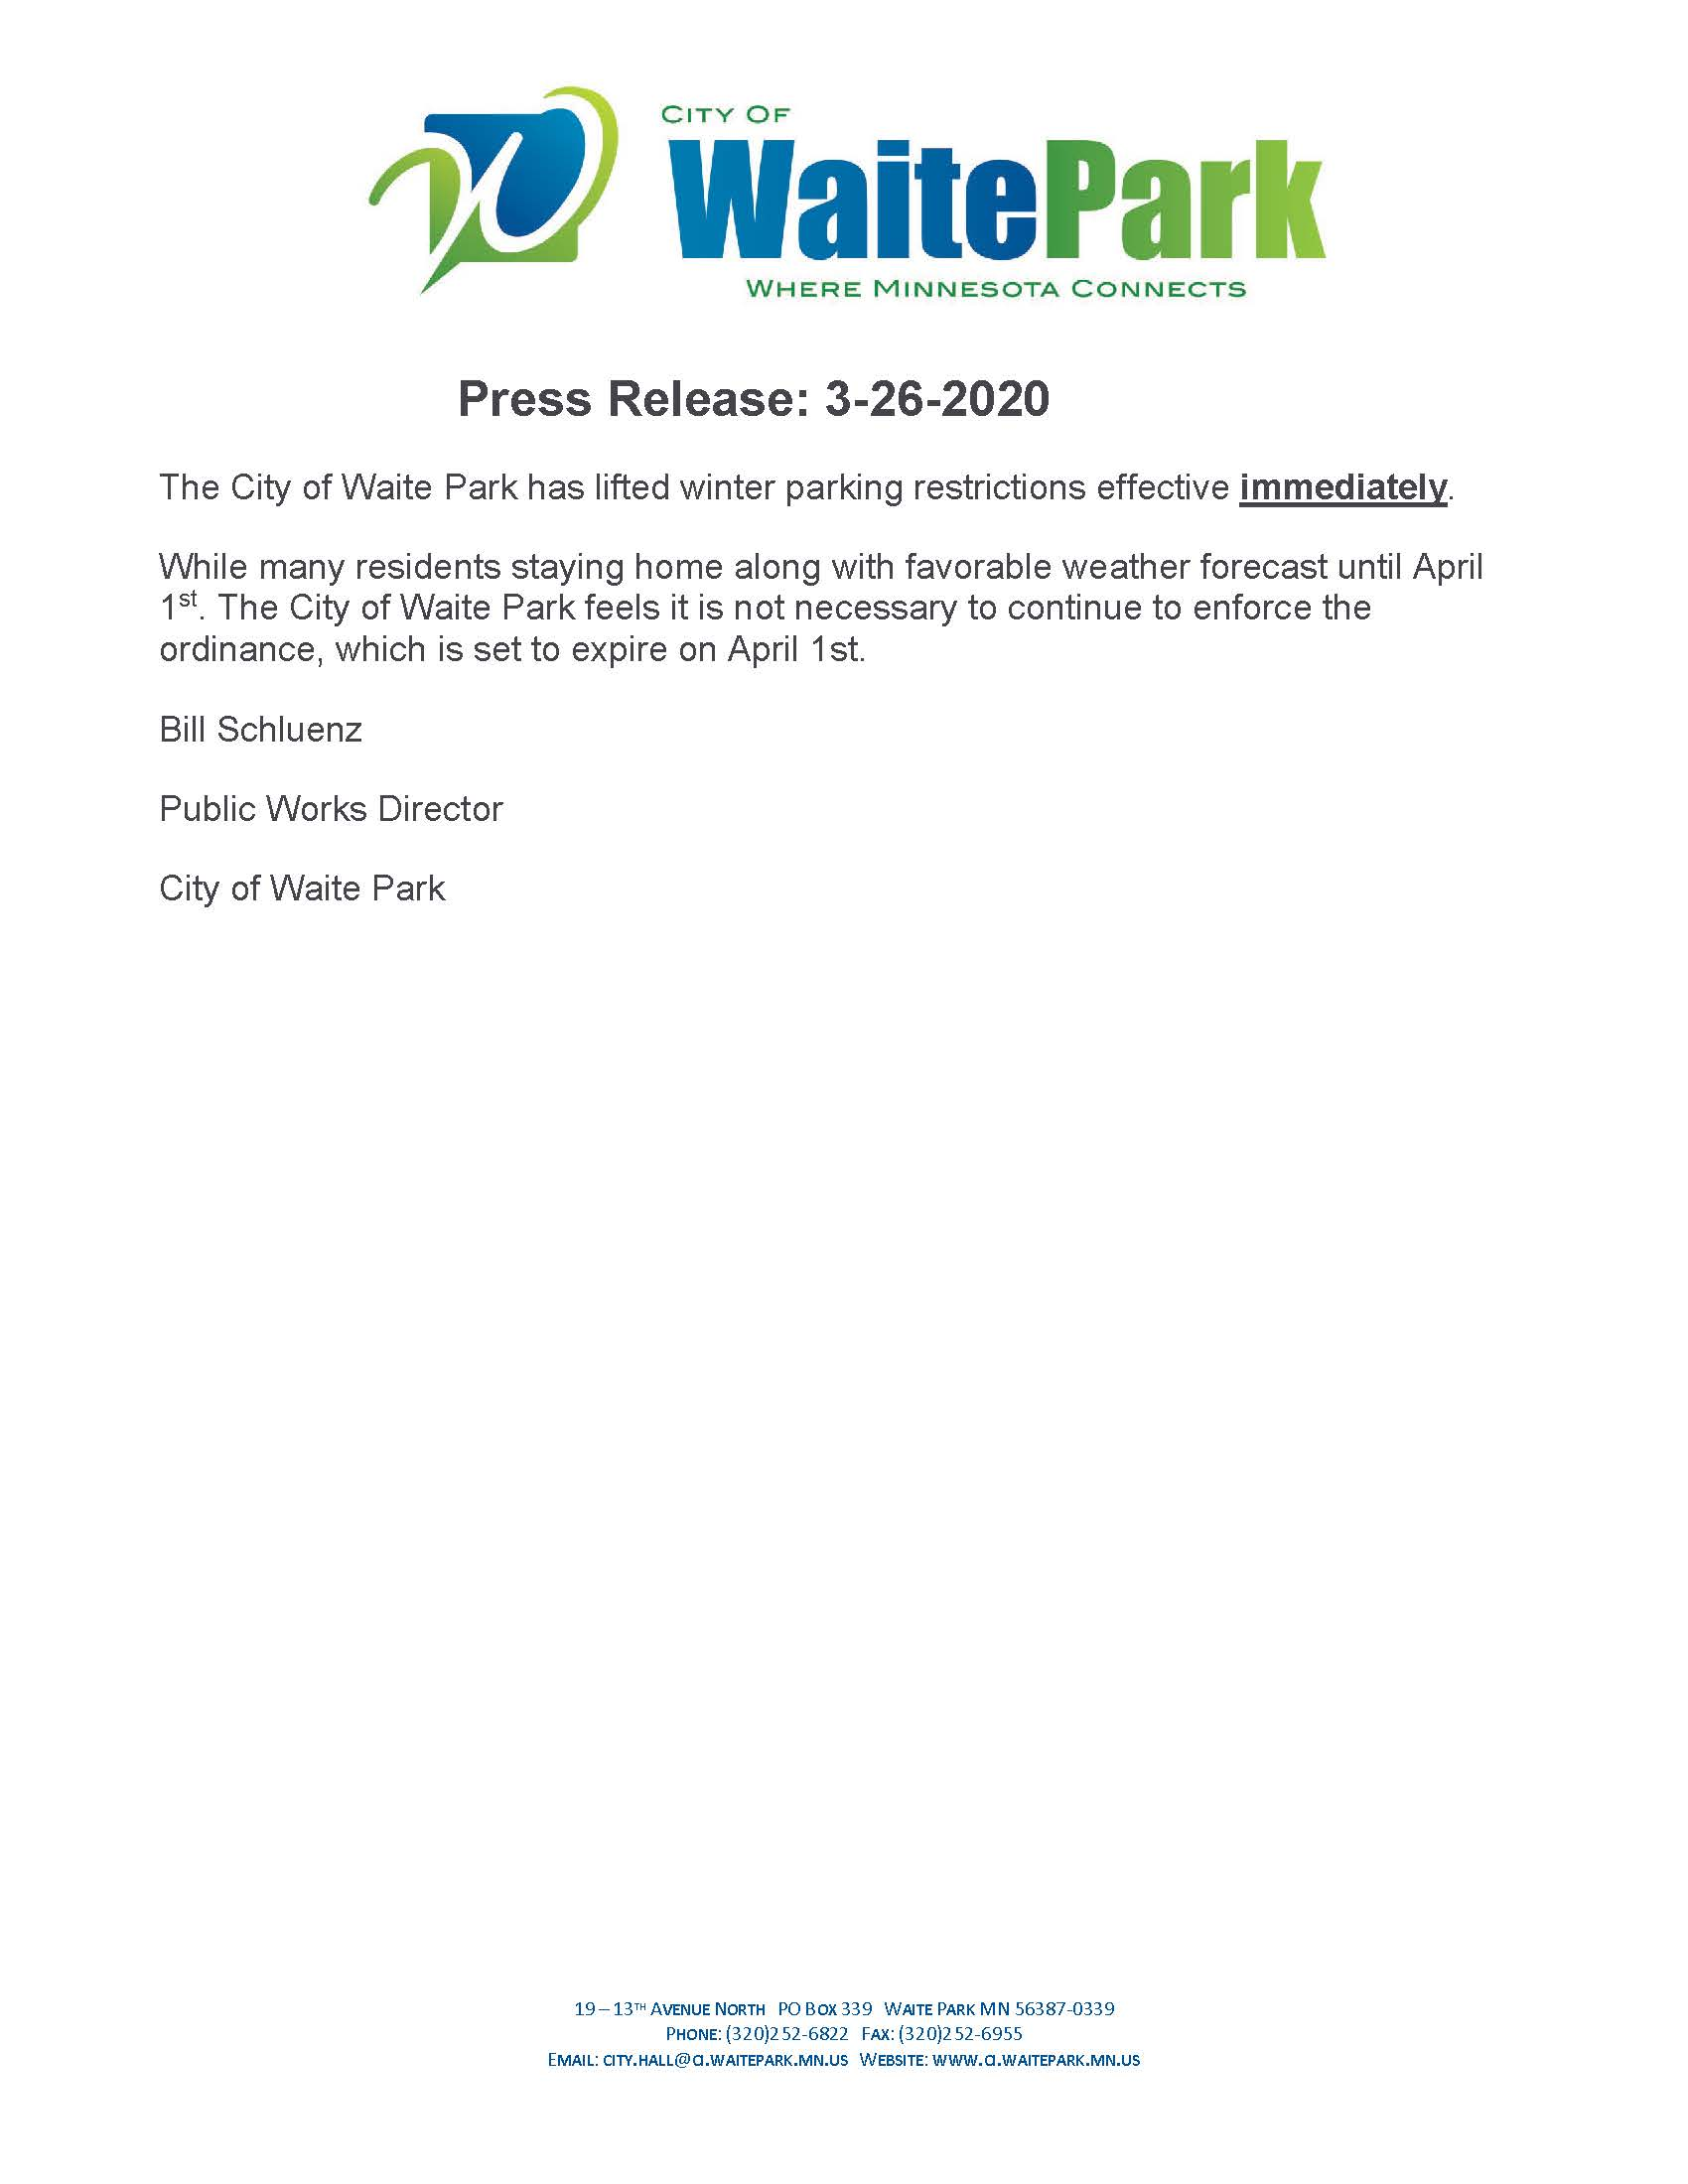 Press Release removing winter parking restrictions effective 3-26-2020